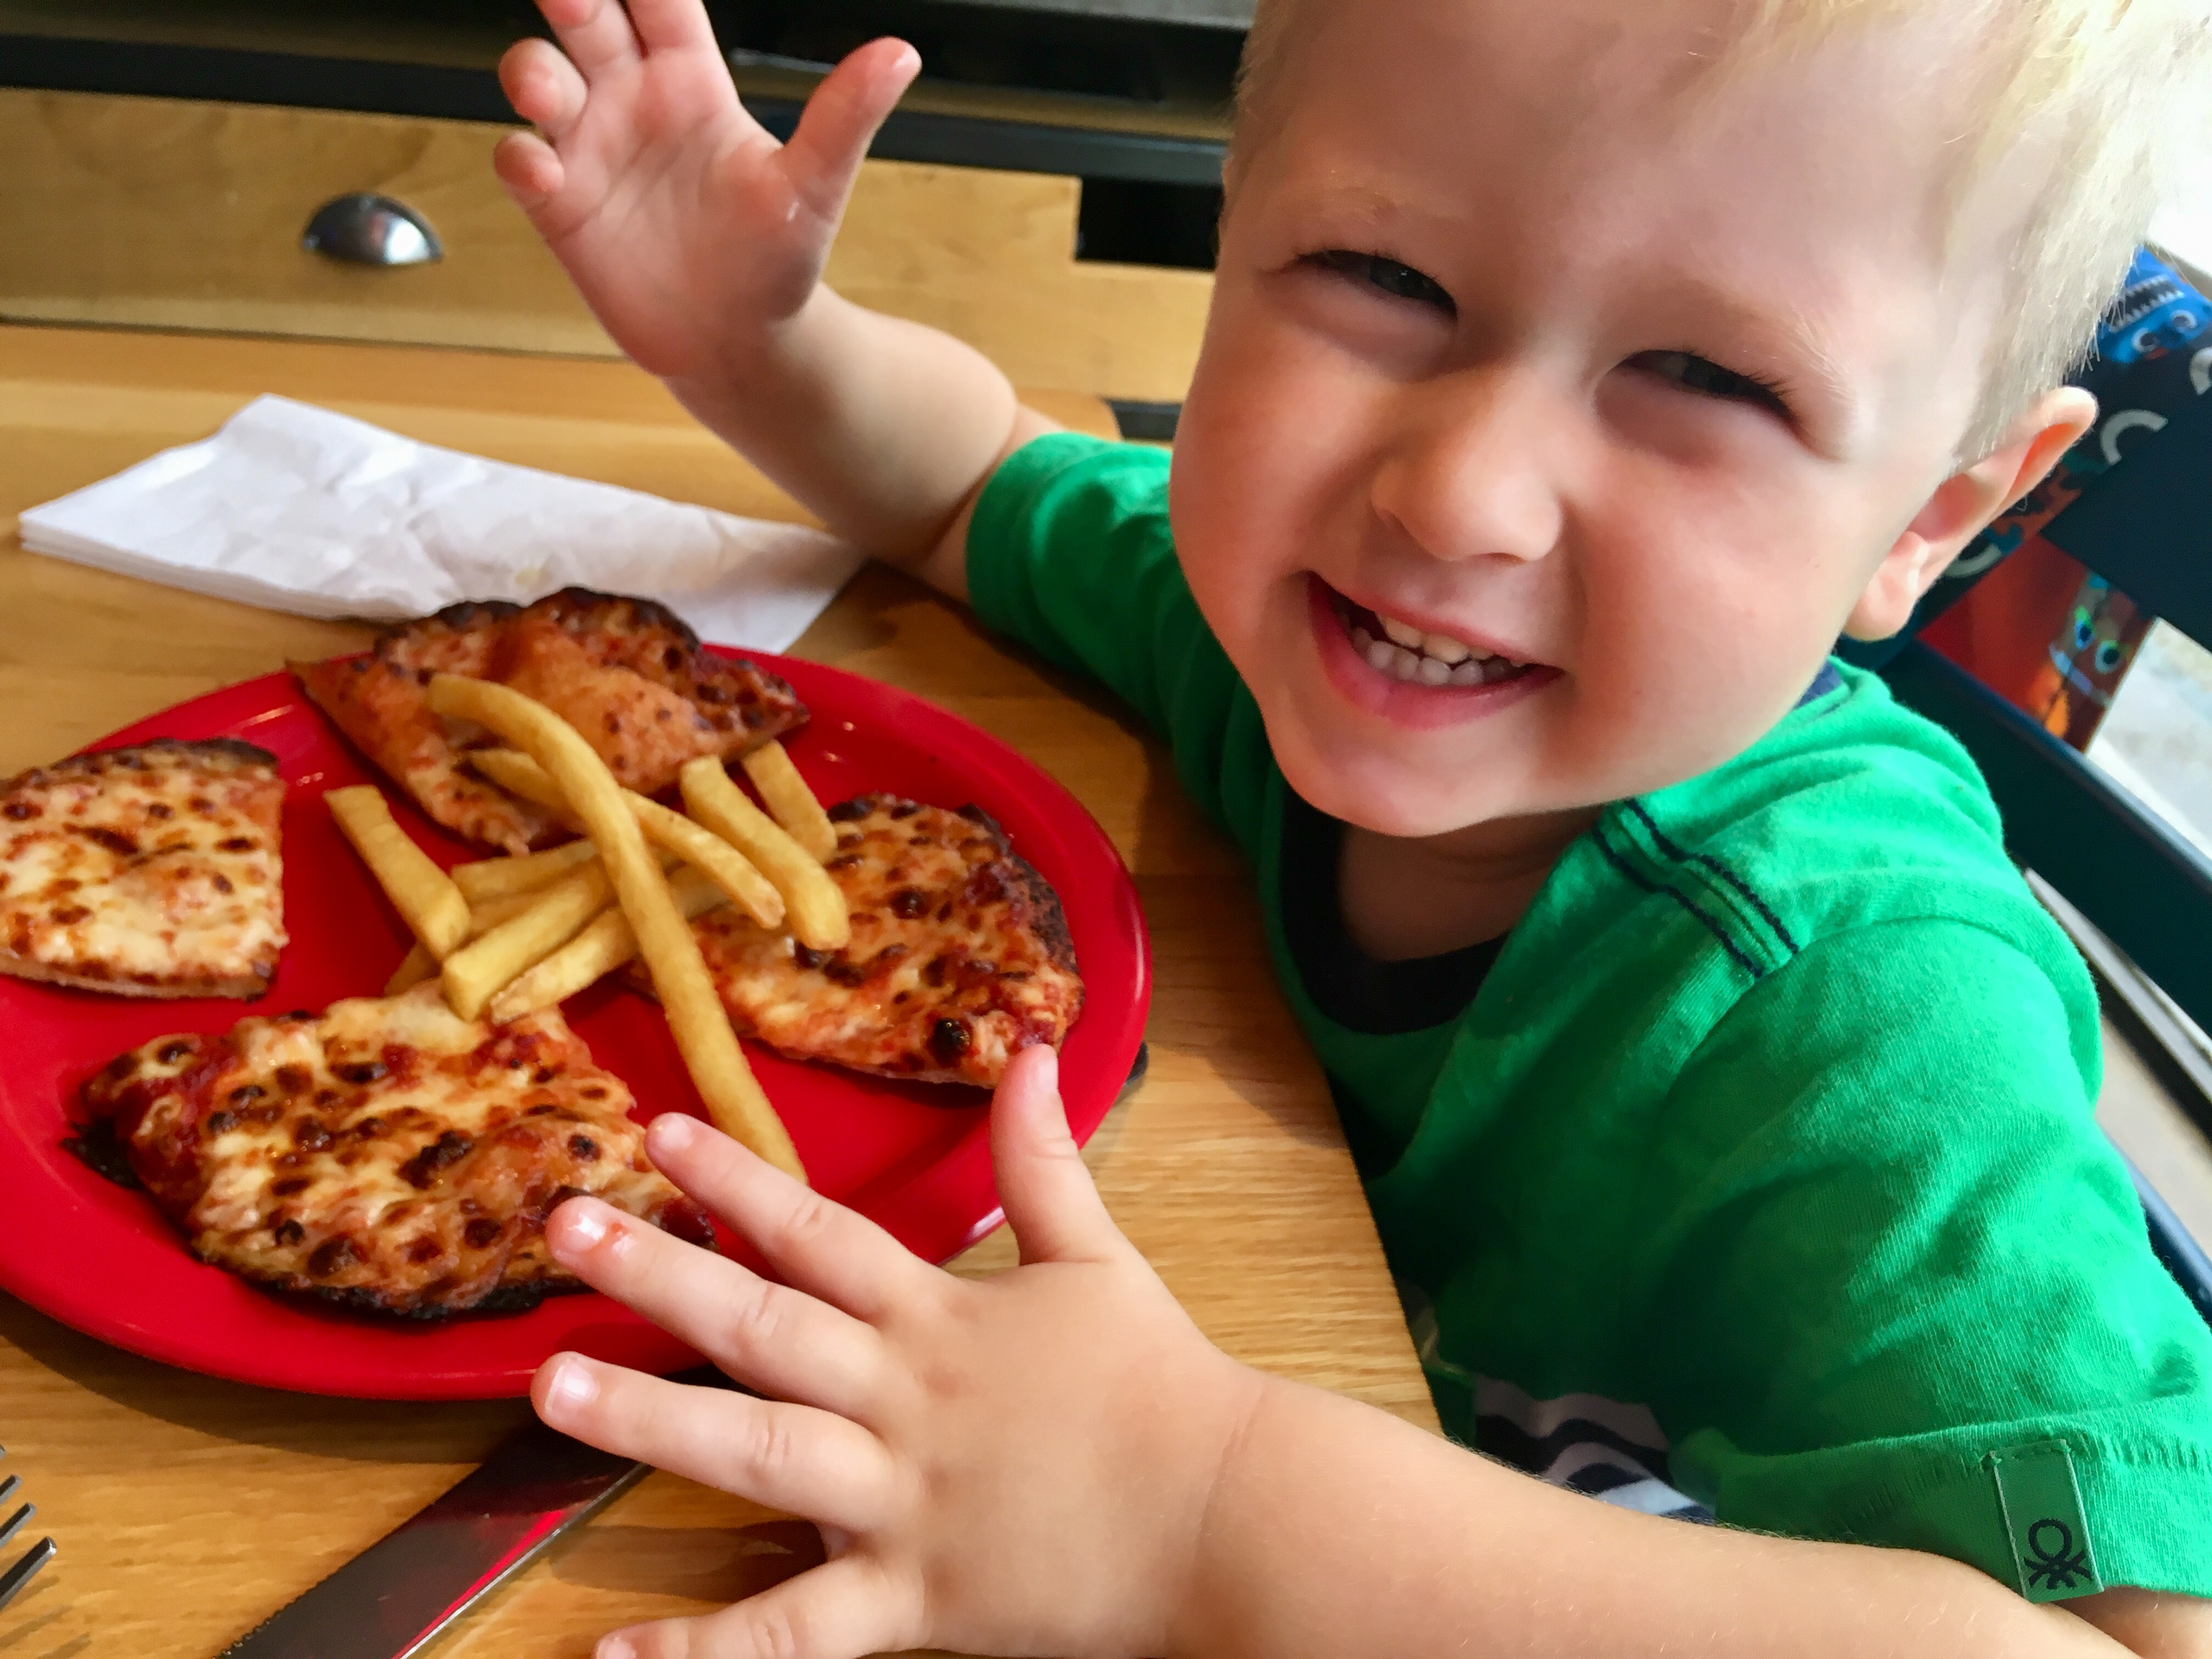 Epic Pizza's at Pizza Hut Lucas smiling at the camera with pizza and chips in front of him